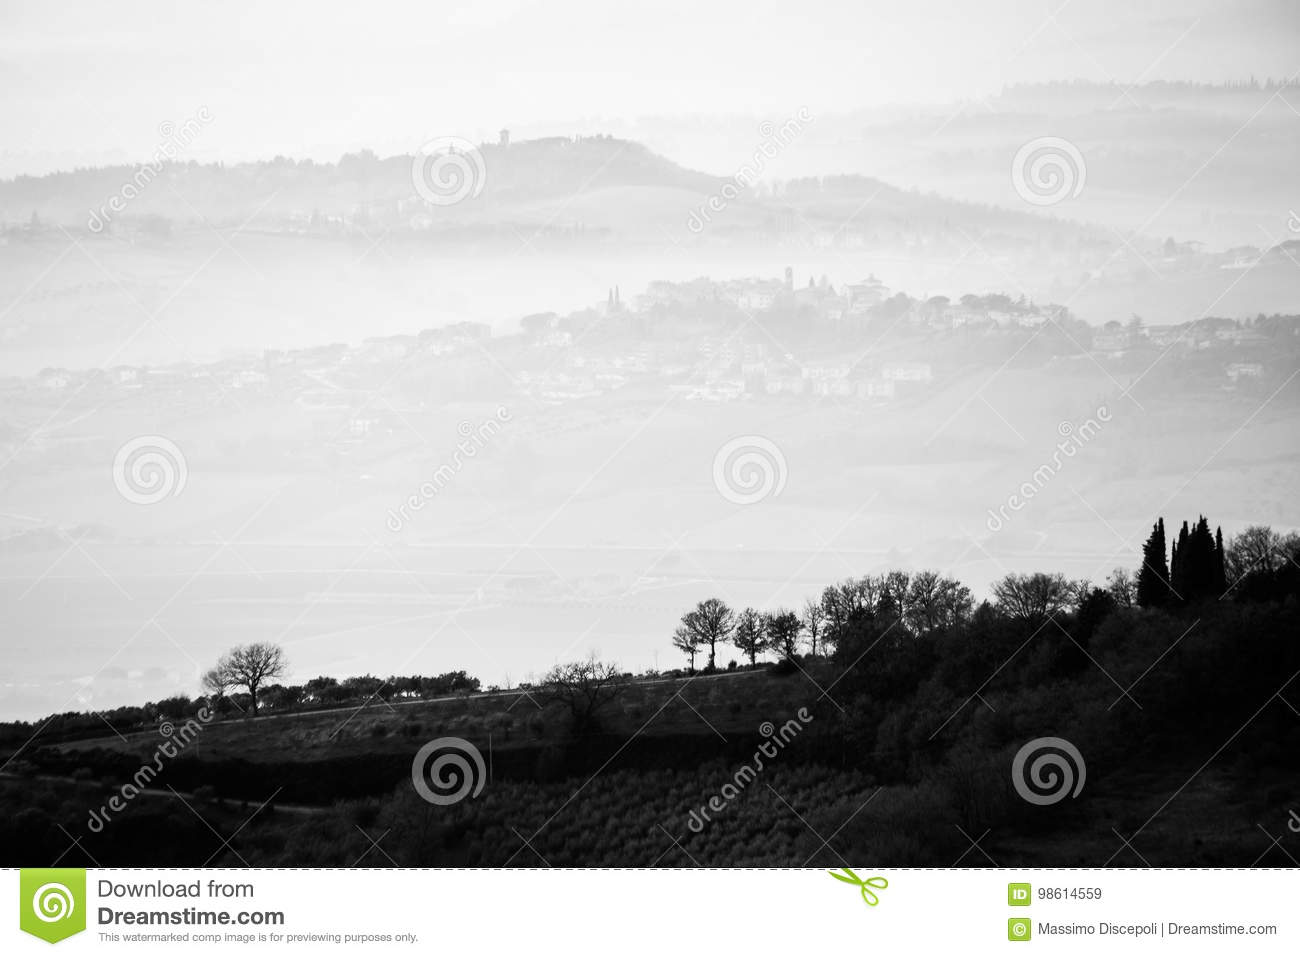 A view of some trees in the foreground with layers of hills and